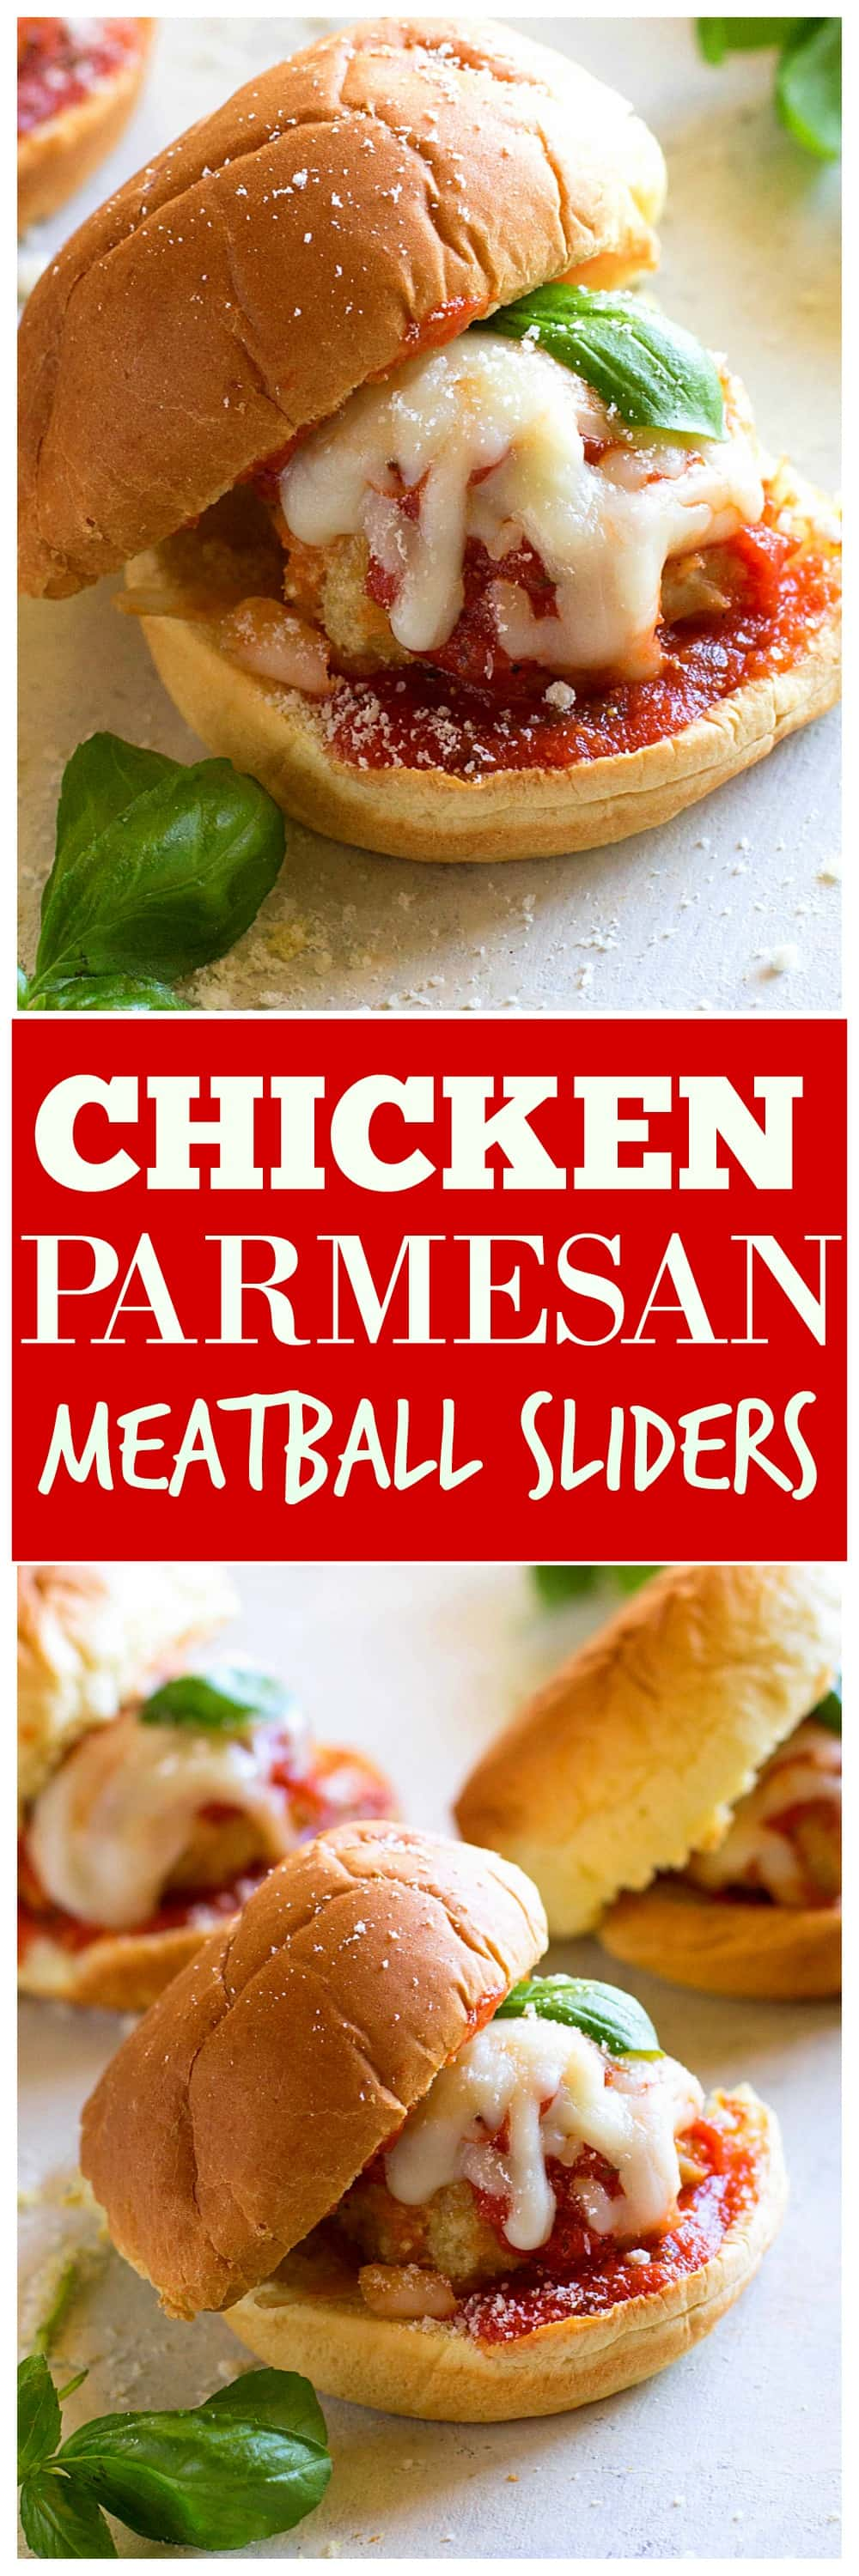 Chicken Parmesan Meatball Sliders - so easy and always a crowd pleaser. #chicken #parmesan #meatball #sliders #recipe